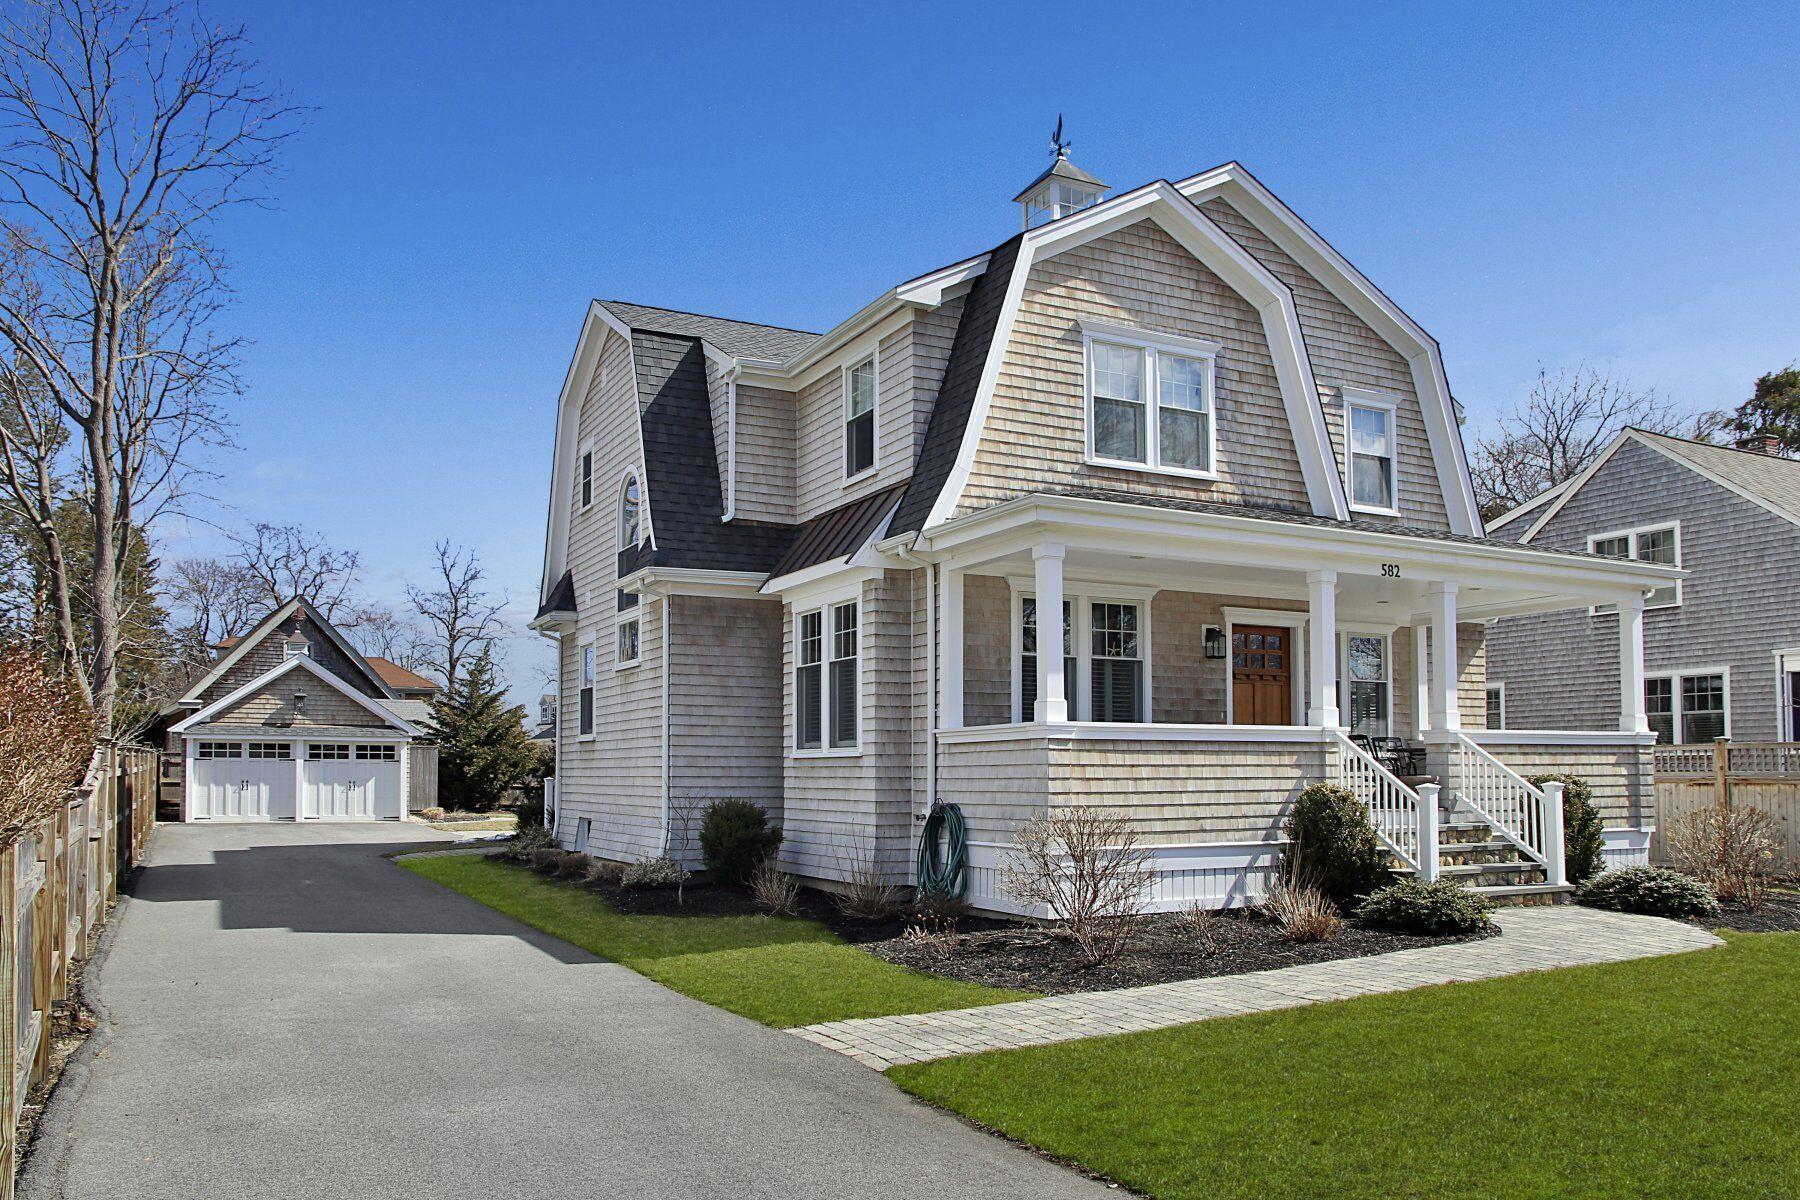 Single Family Home for Active at 582 Hatherly Road, Scituate, MA 582 Hatherly Road Scituate, Massachusetts 02066 United States